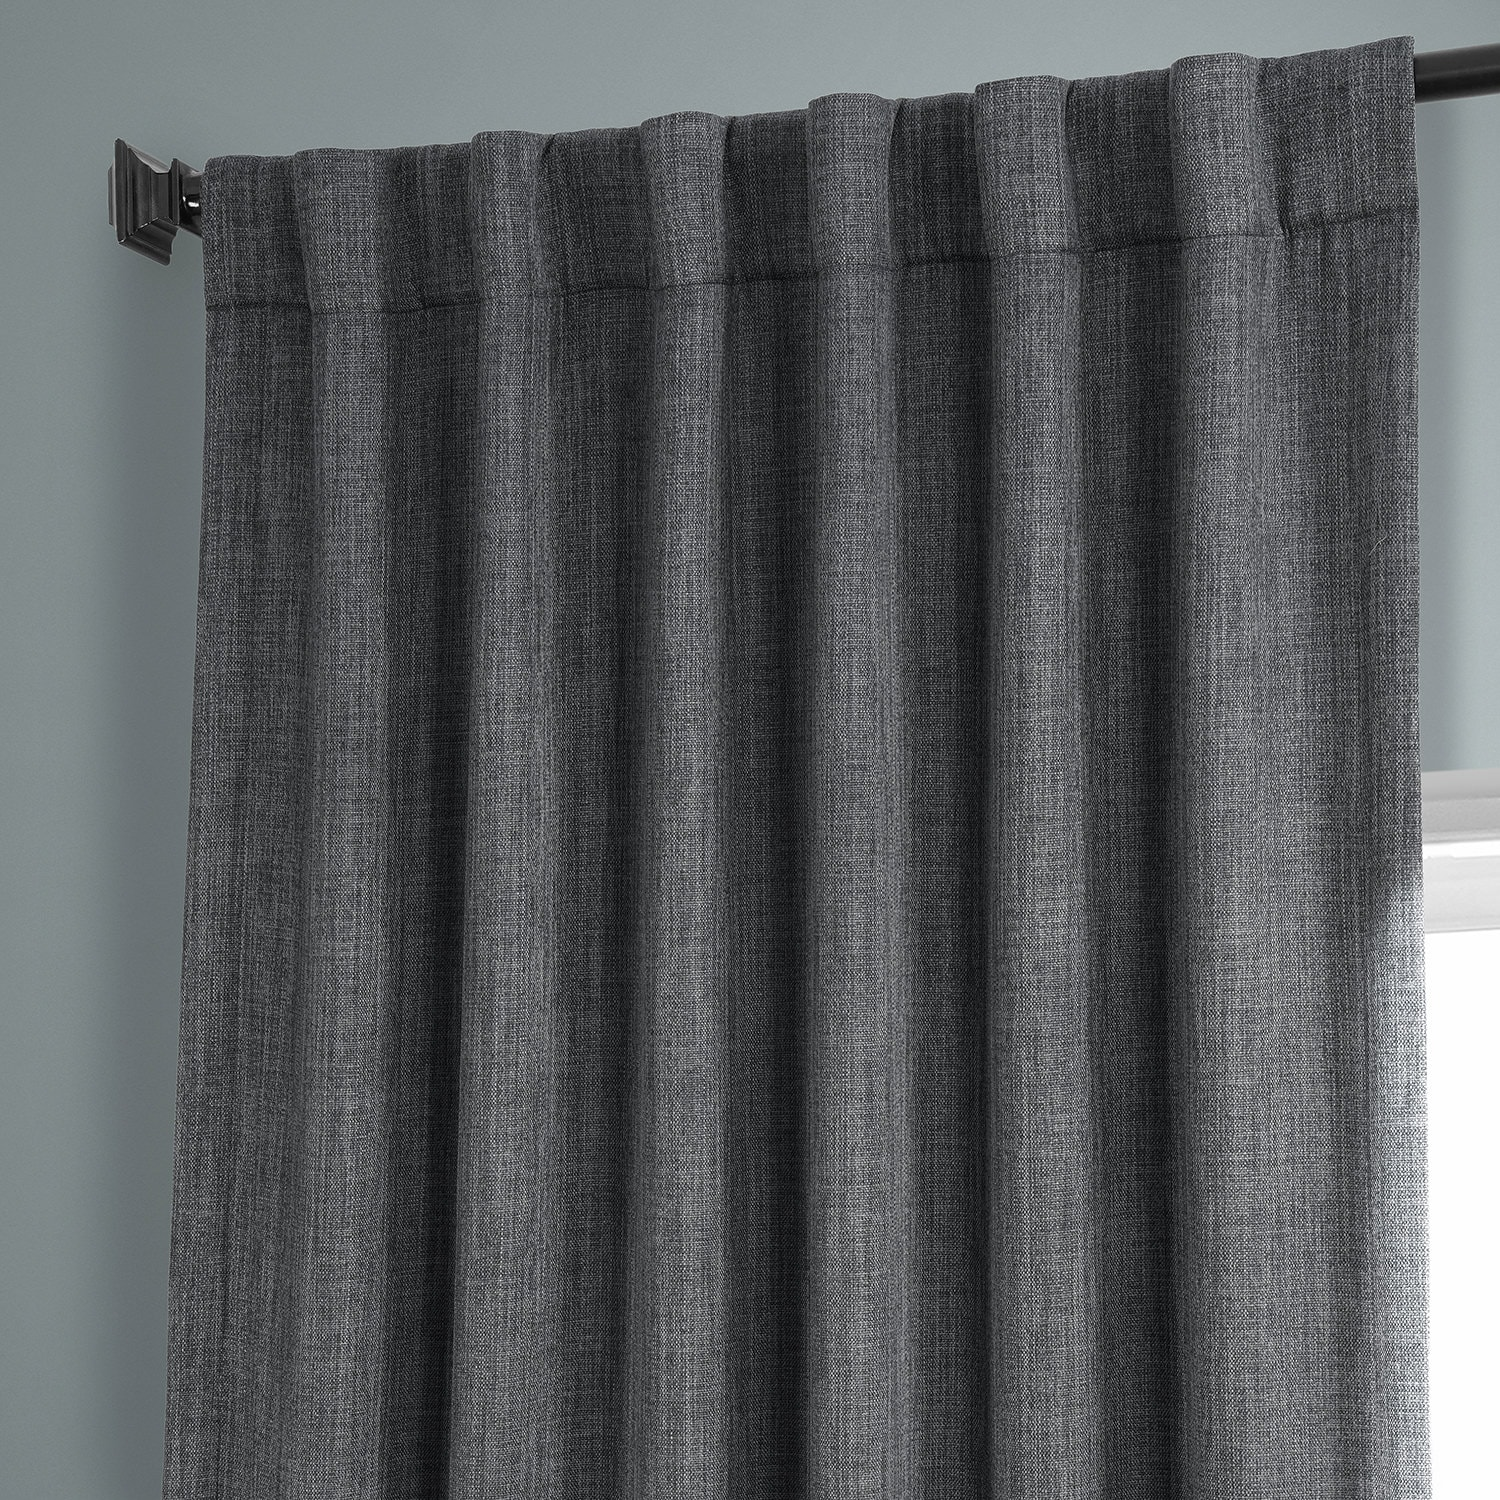 Dark Gravel Faux Linen Blackout Curtain